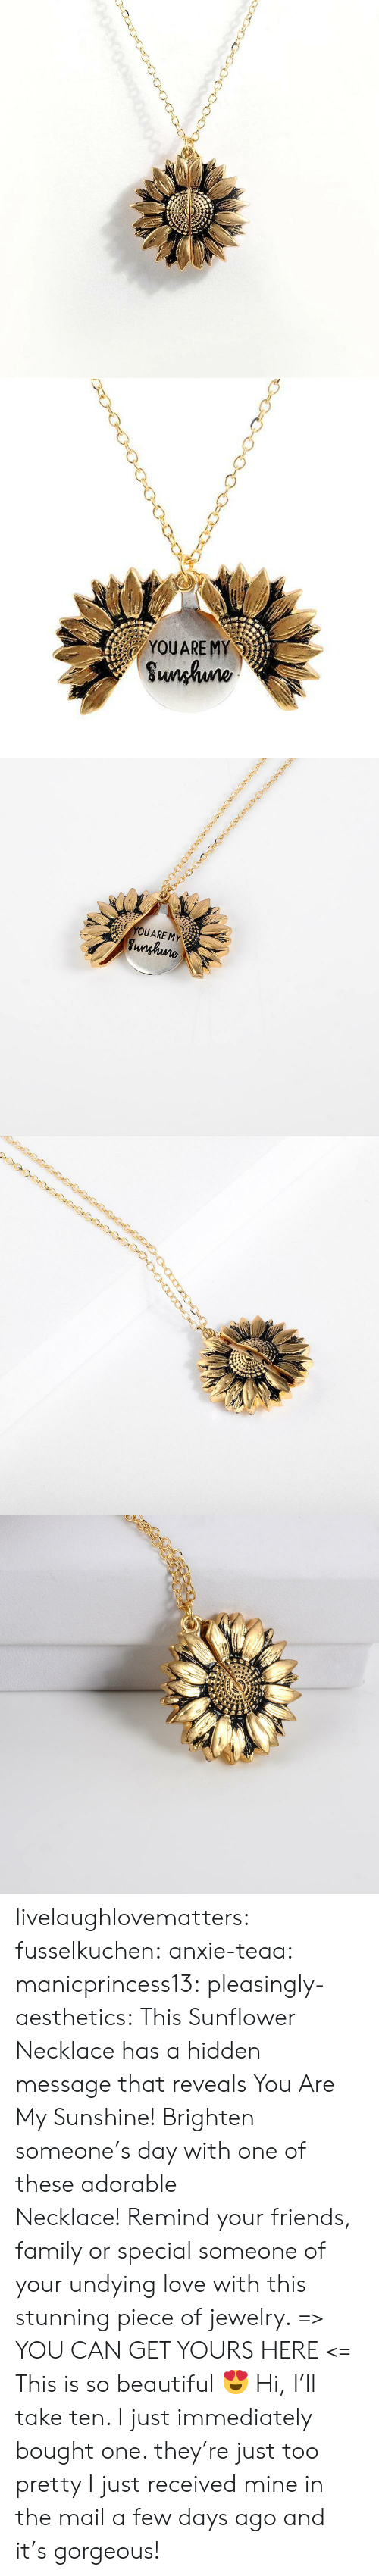 So Beautiful: YOUARE MY  Sunhuno   YOUARE MY  Sunghune livelaughlovematters:  fusselkuchen: anxie-teaa:   manicprincess13:   pleasingly-aesthetics:  This Sunflower Necklace has a hidden message that reveals You Are My Sunshine! Brighten someone's day with one of these adorable Necklace! Remind your friends, family or special someone of your undying love with this stunning piece of jewelry. => YOU CAN GET YOURS HERE <=   This is so beautiful 😍    Hi, I'll take ten.    I just immediately bought one. they're just too pretty   I just received mine in the mail a few days ago and it's gorgeous!